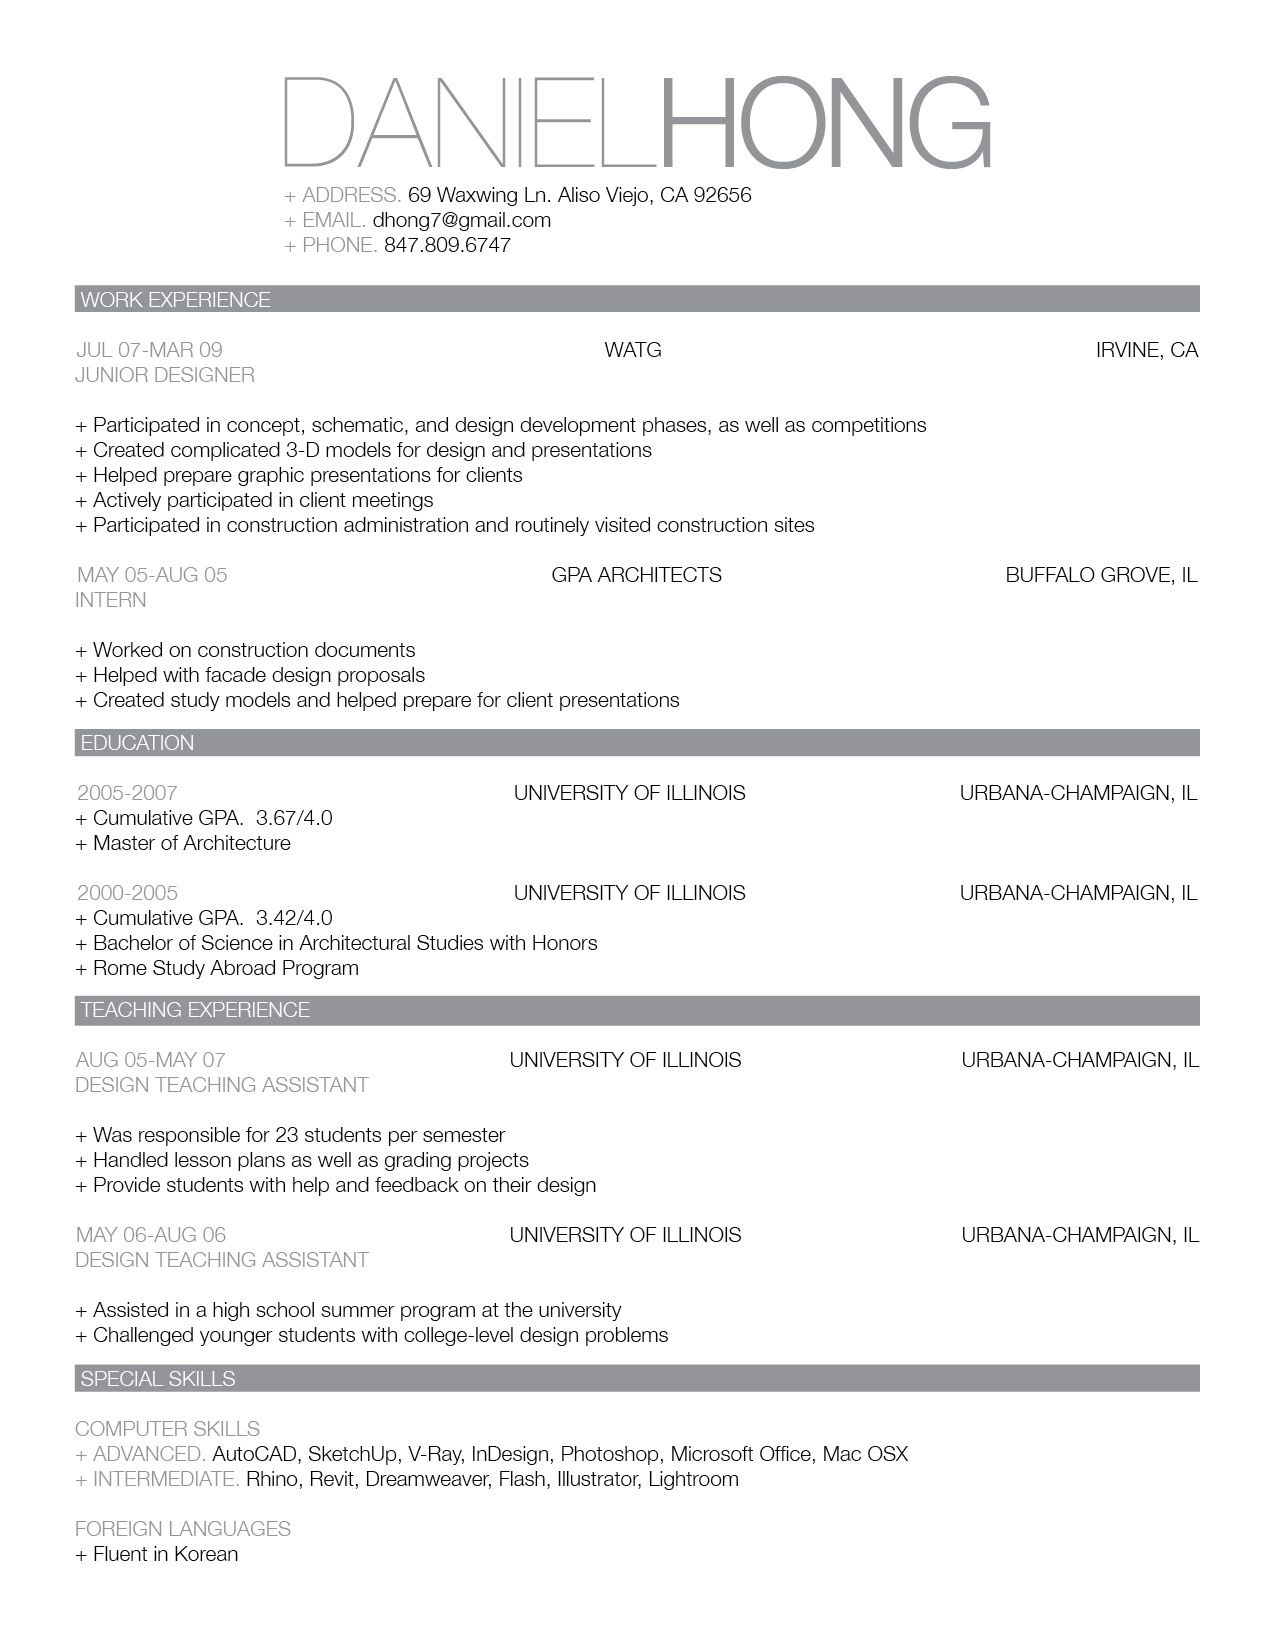 updated cv and work sample creative cvs pinterest professional